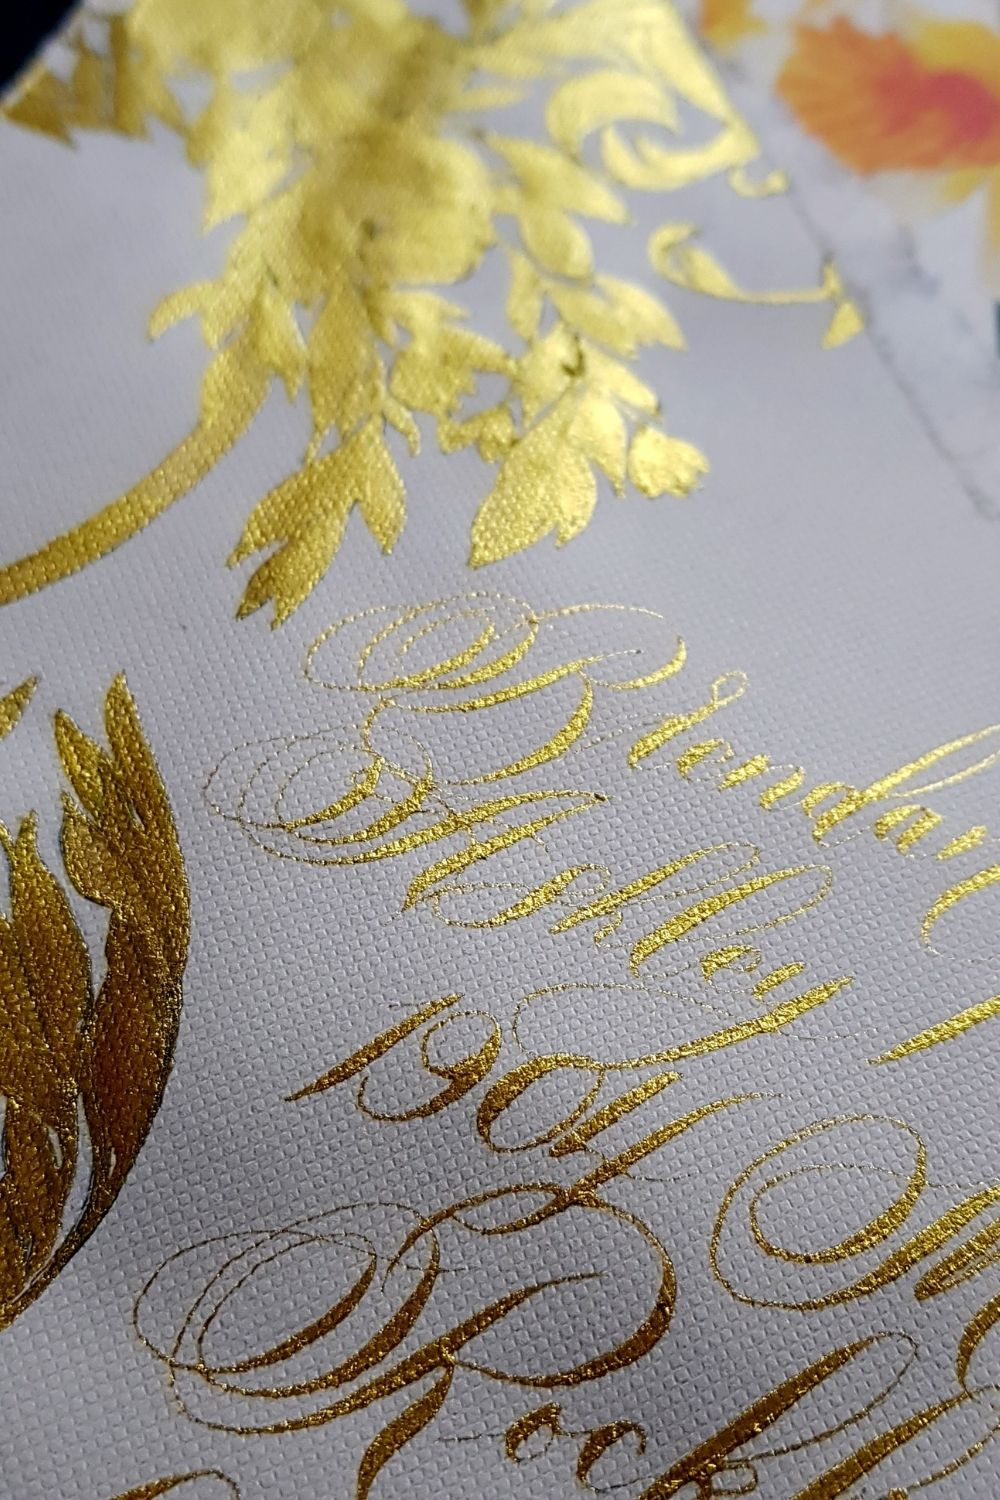 Ireland wedding invitations for a luxury country elopement featuring a beautiful dramatic crest design and gold calligraphy